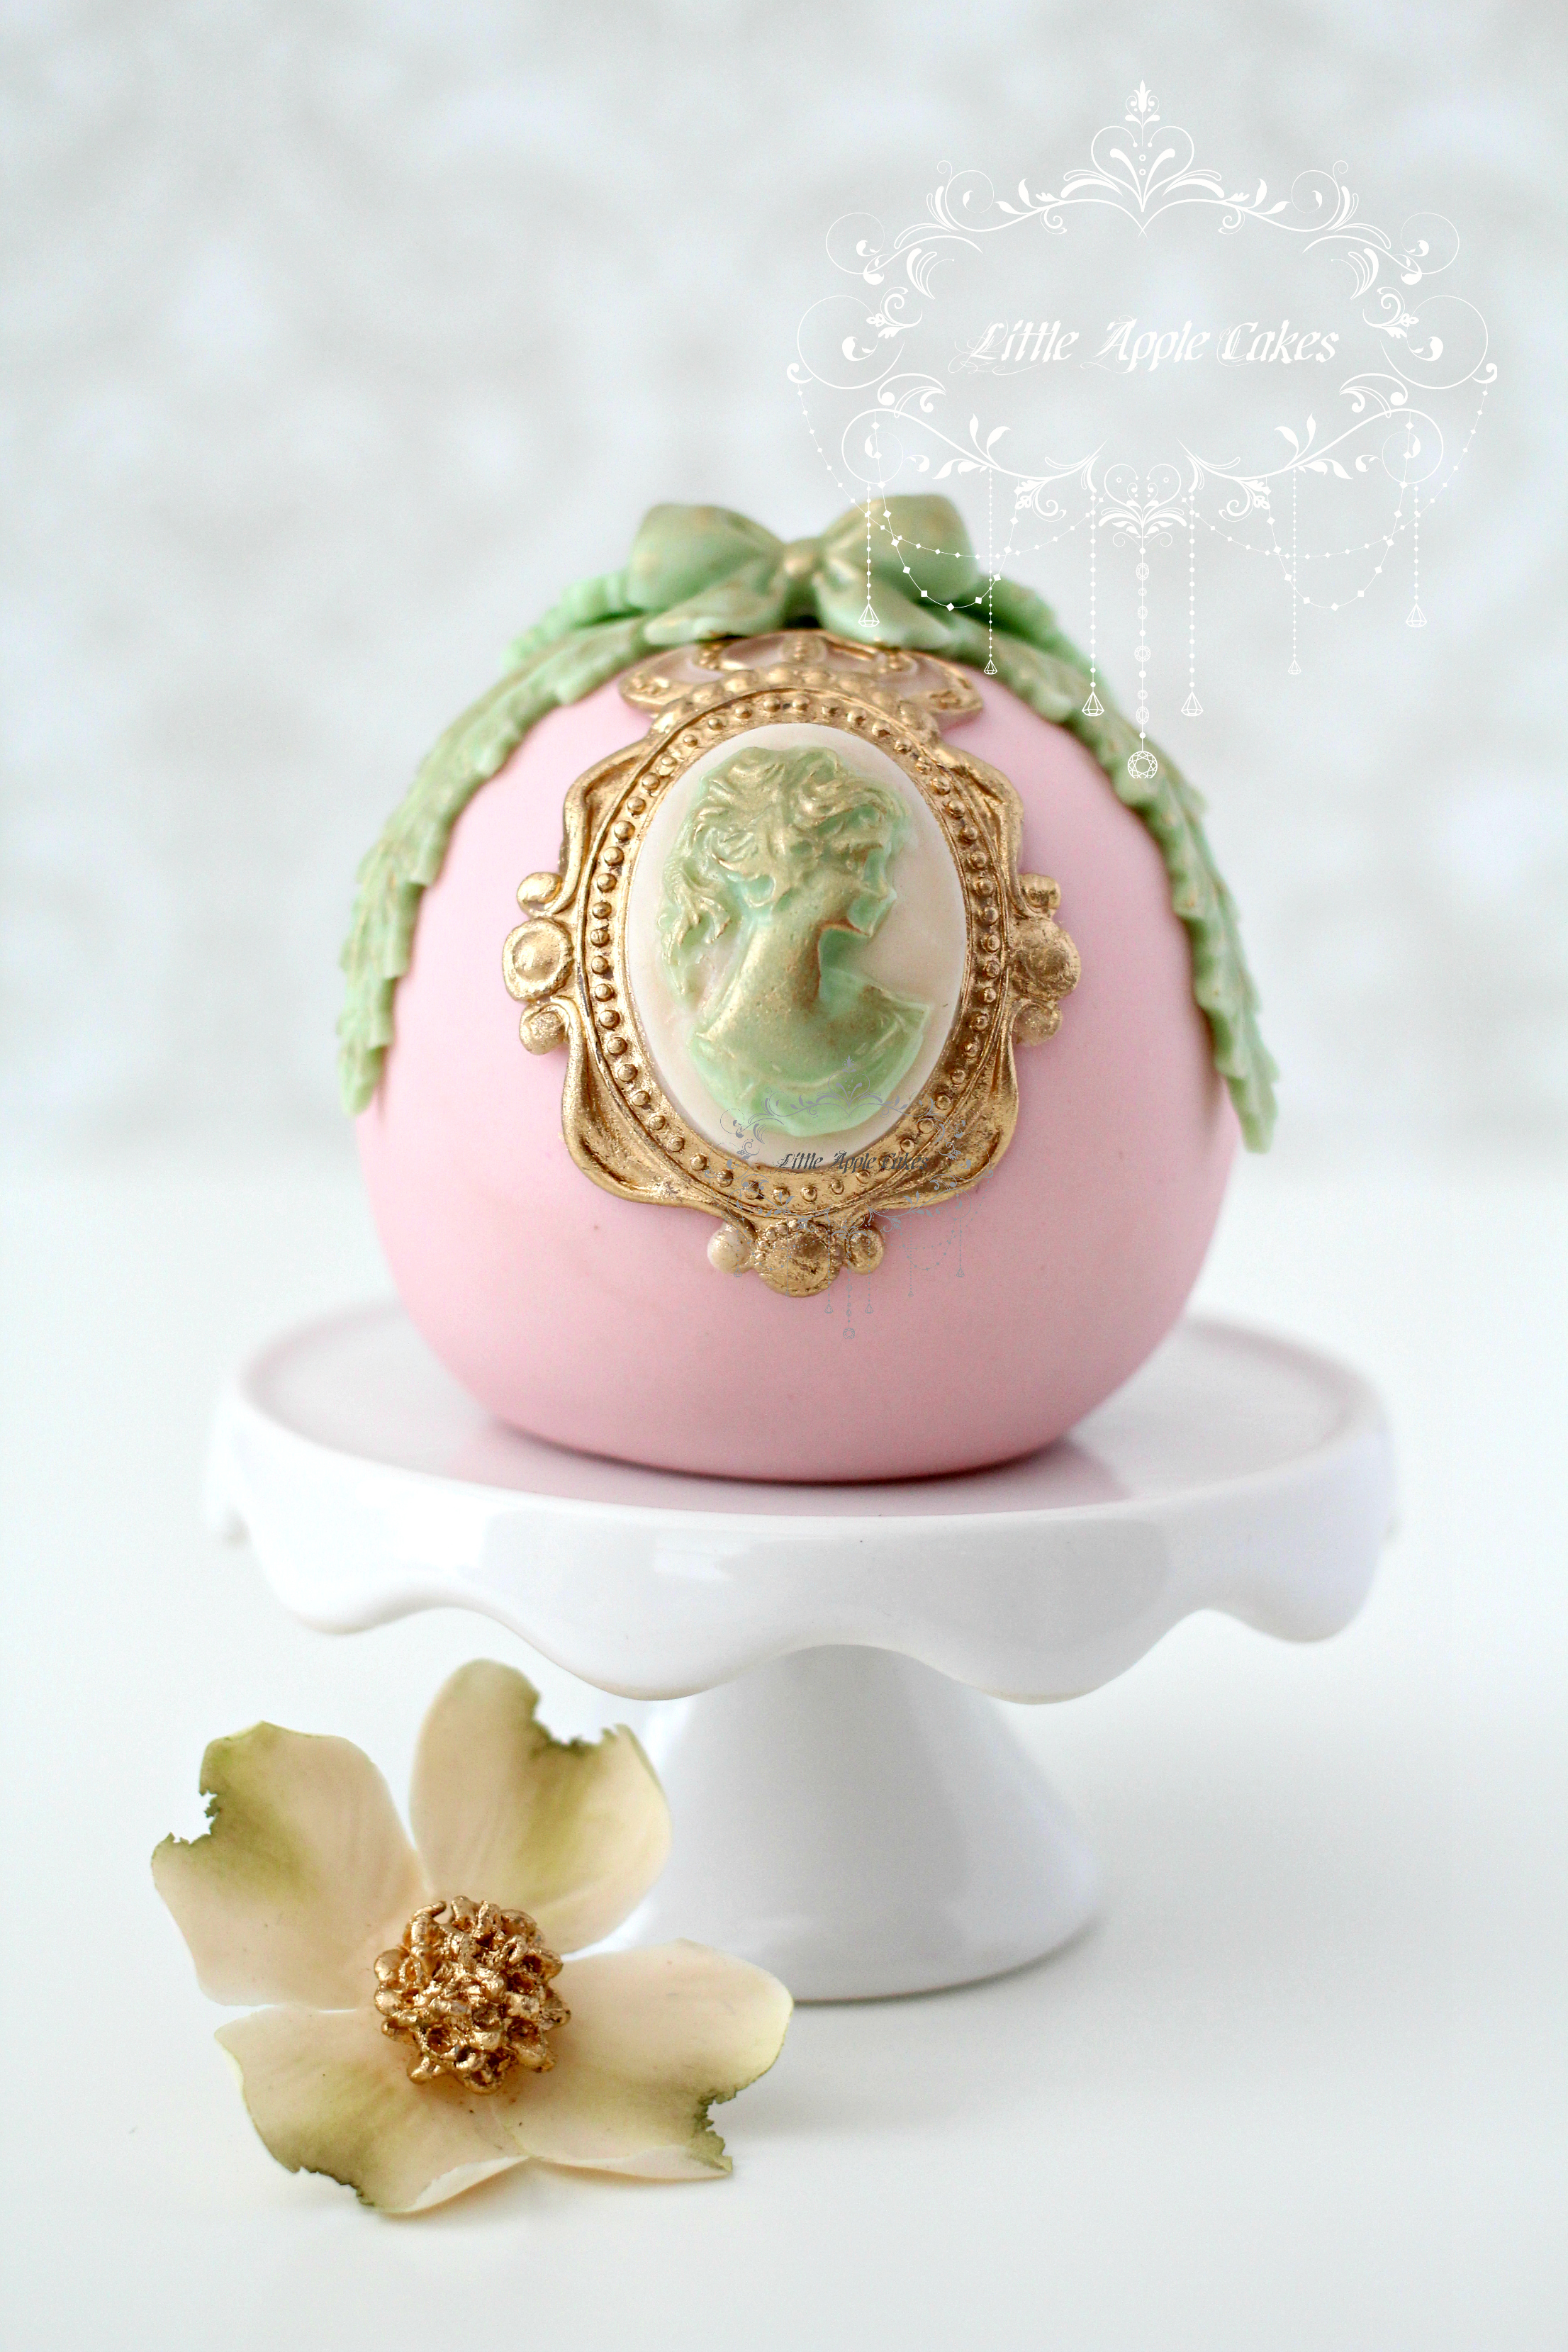 Victorian egg shaped cake